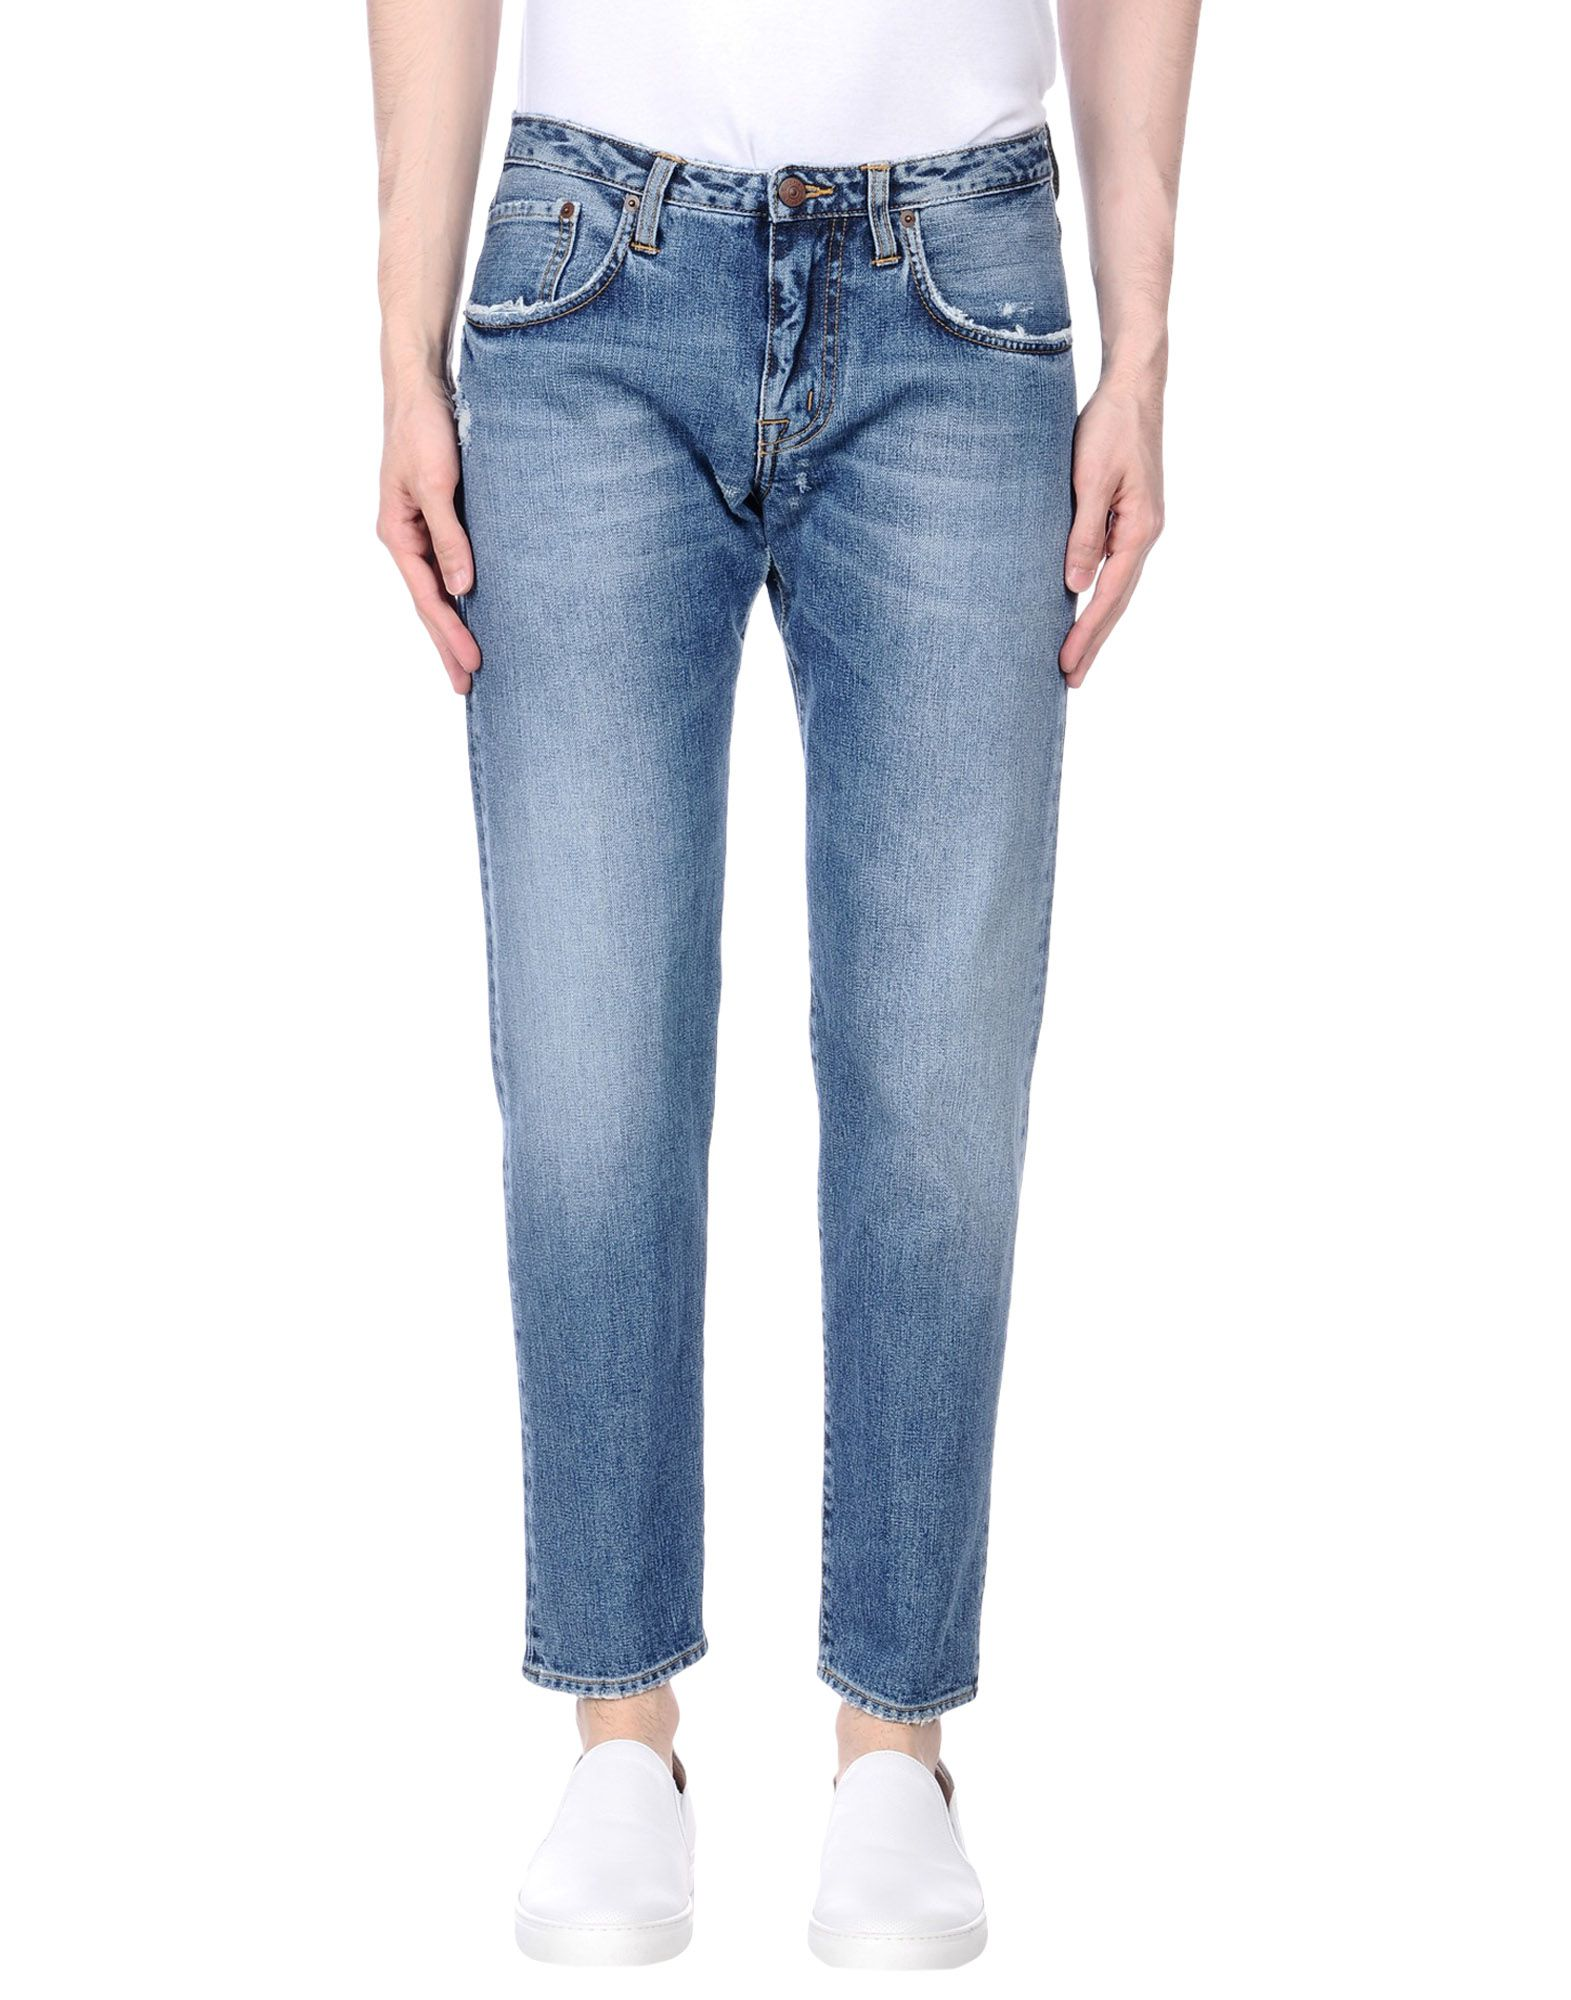 Pantaloni Jeans (+) People Donna - Acquista online su